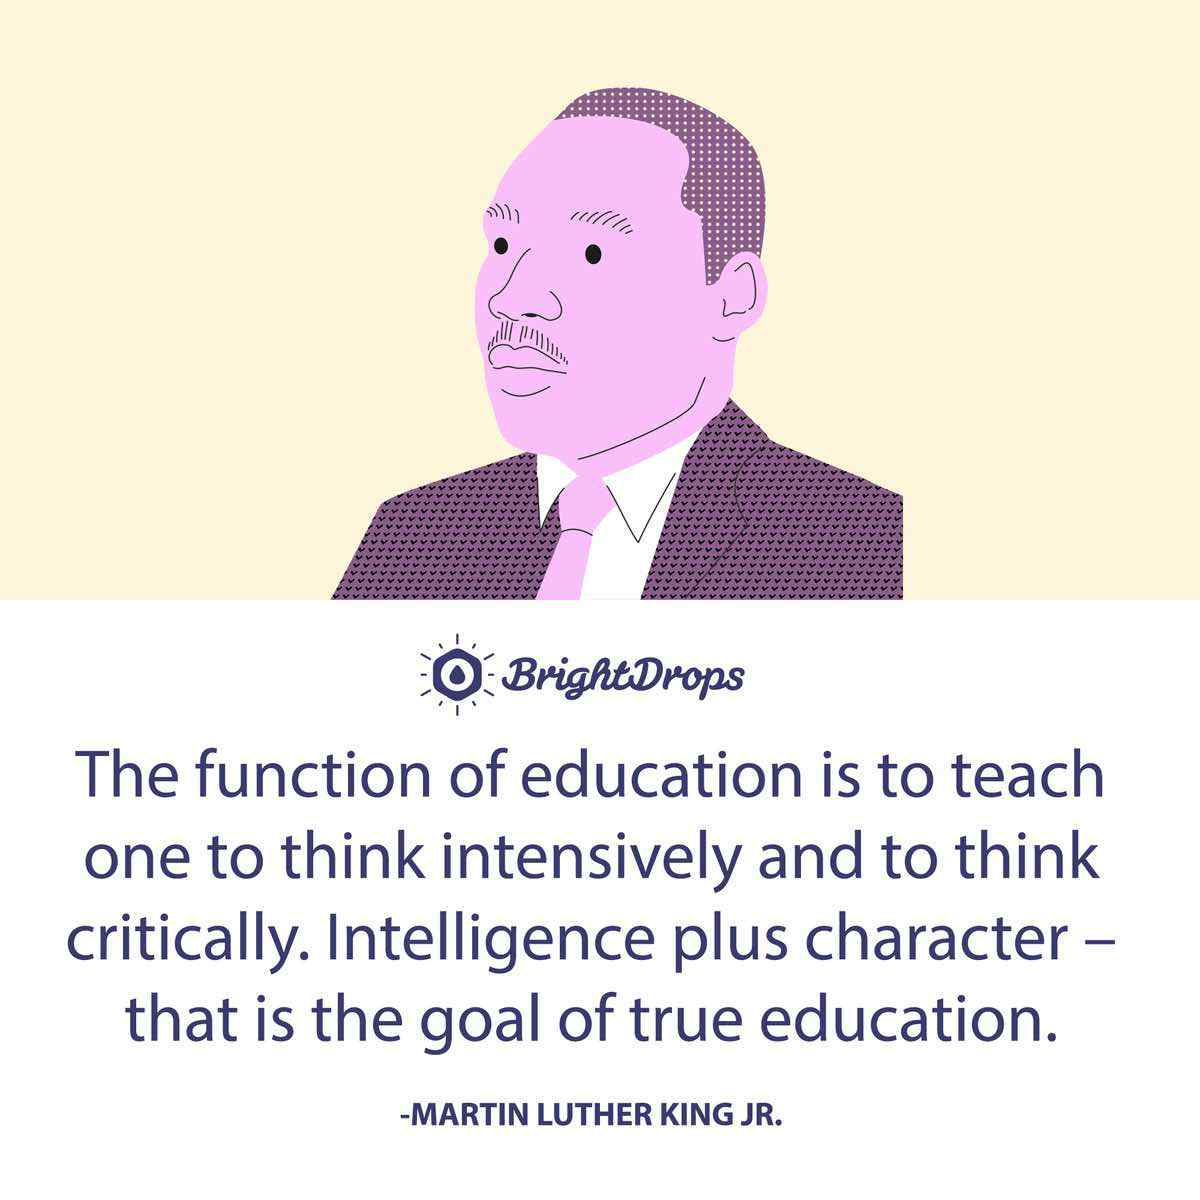 The function of education is to teach one to think intensively and to think critically. Intelligence plus character – that is the goal of true education. -Martin Luther King Jr.